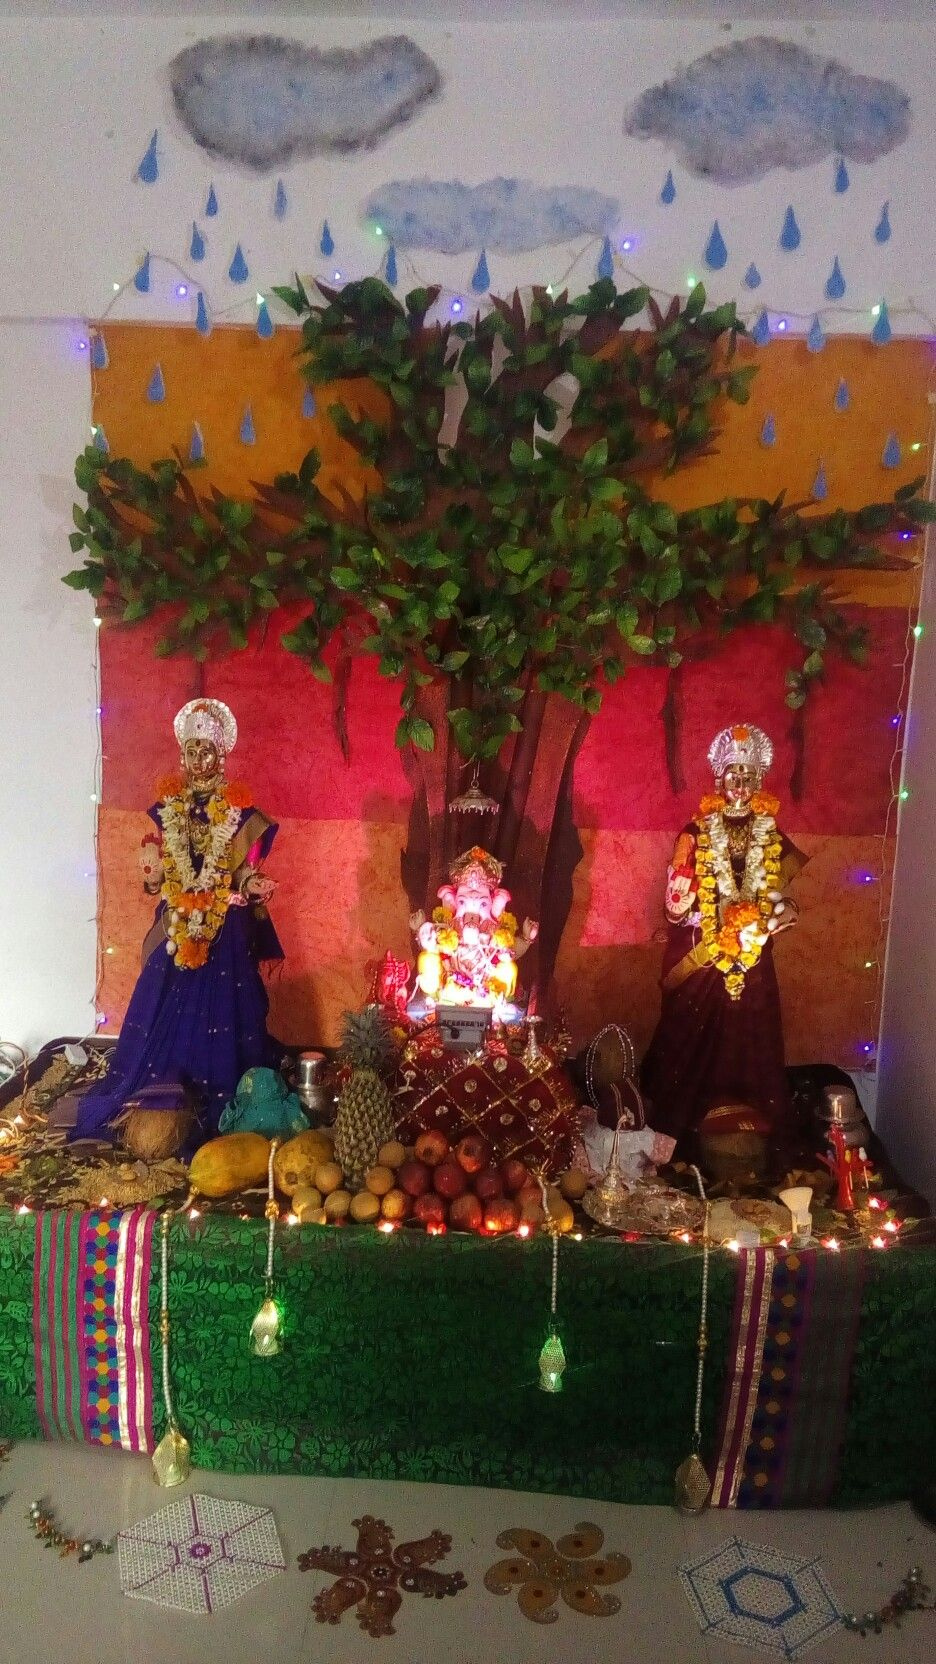 Ganpati Decoration Tree Ganpati Decoration At Home Decoration For Ganpati Eco Friendly Ganpati Decoration,Simple 3 Bedroom House Plans With Photos